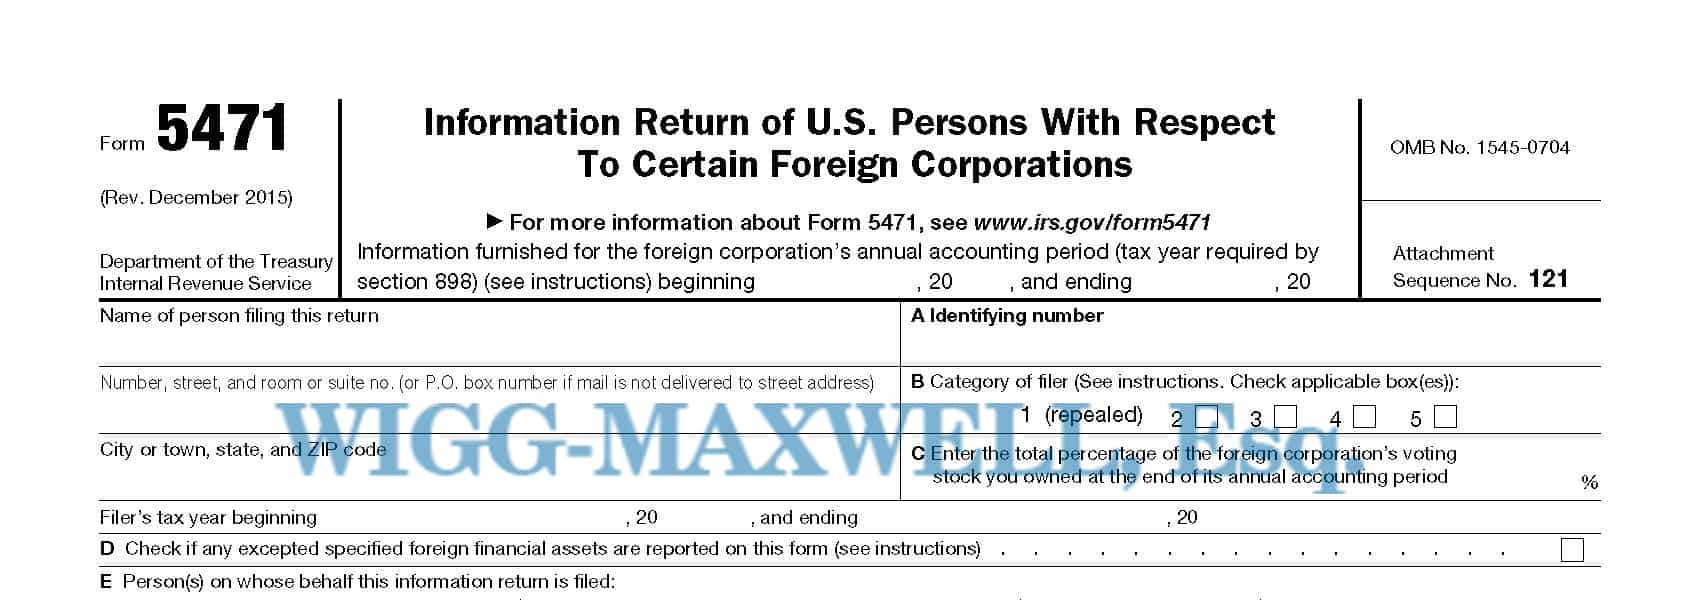 What Accounting Problems Can I Expect In Filing A 5471 The Irs May